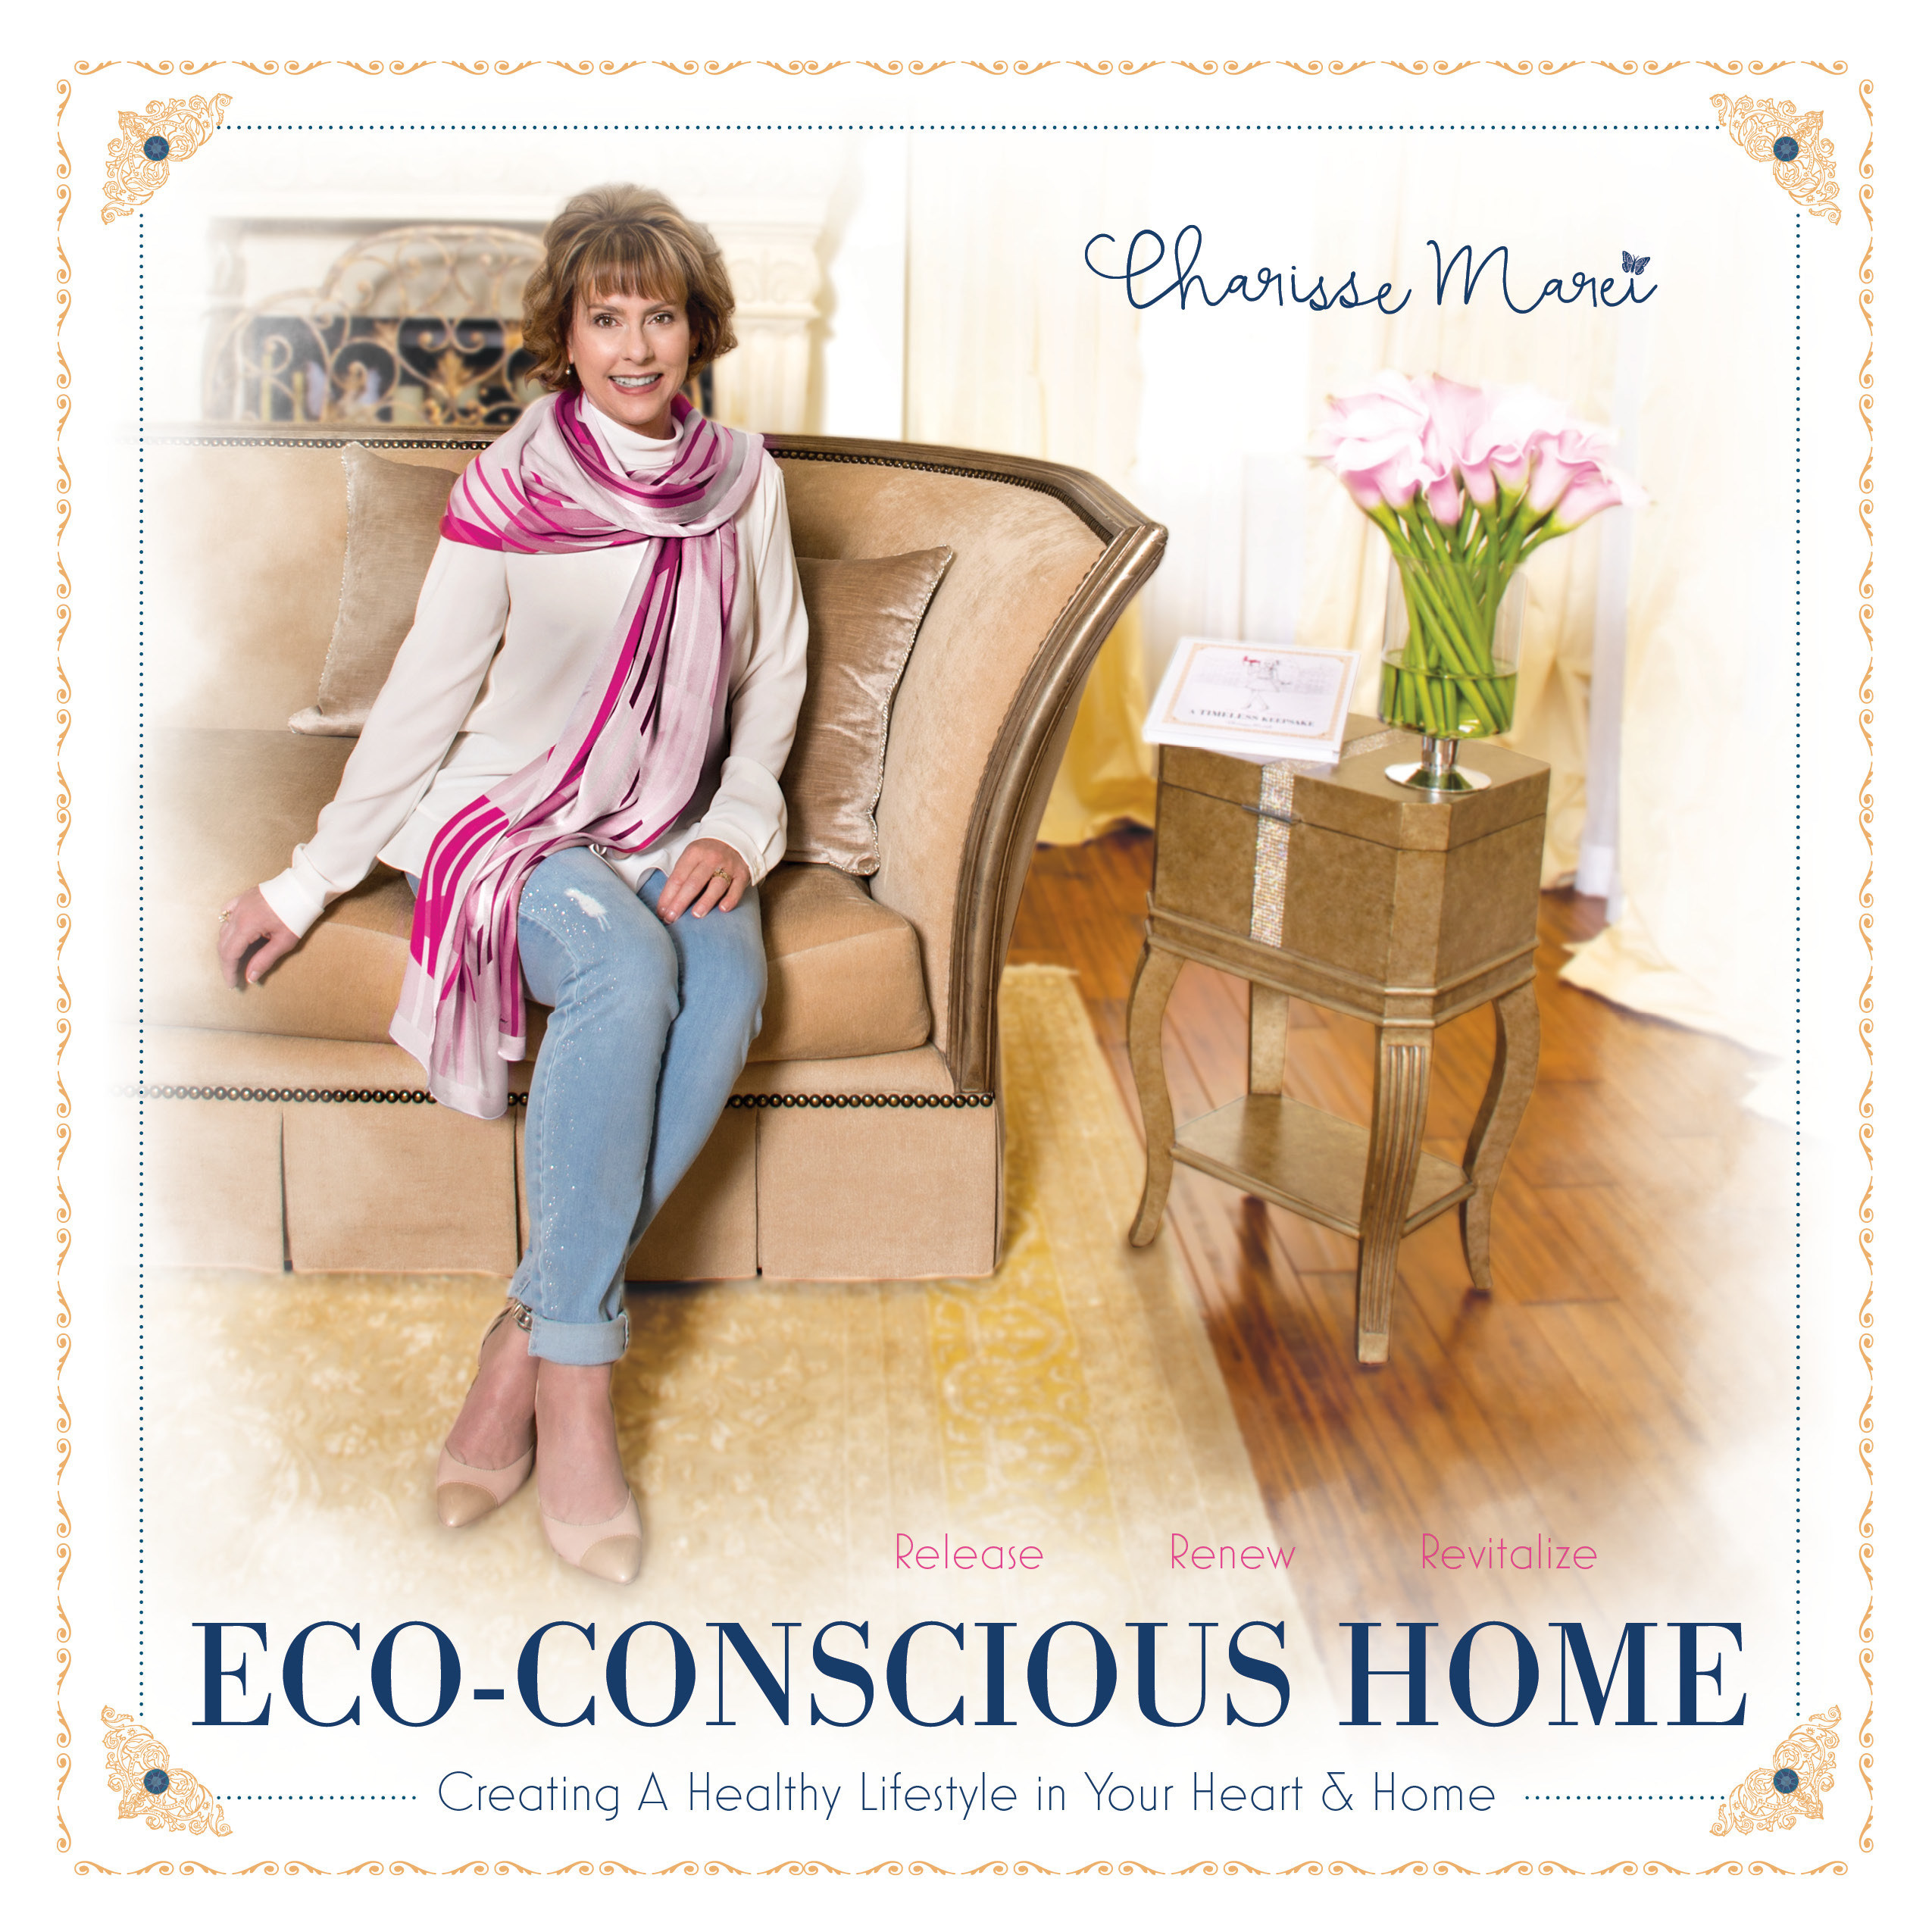 Eco-Conscious Home: Creating a Healthy Lifestyle in Your Heart & Home